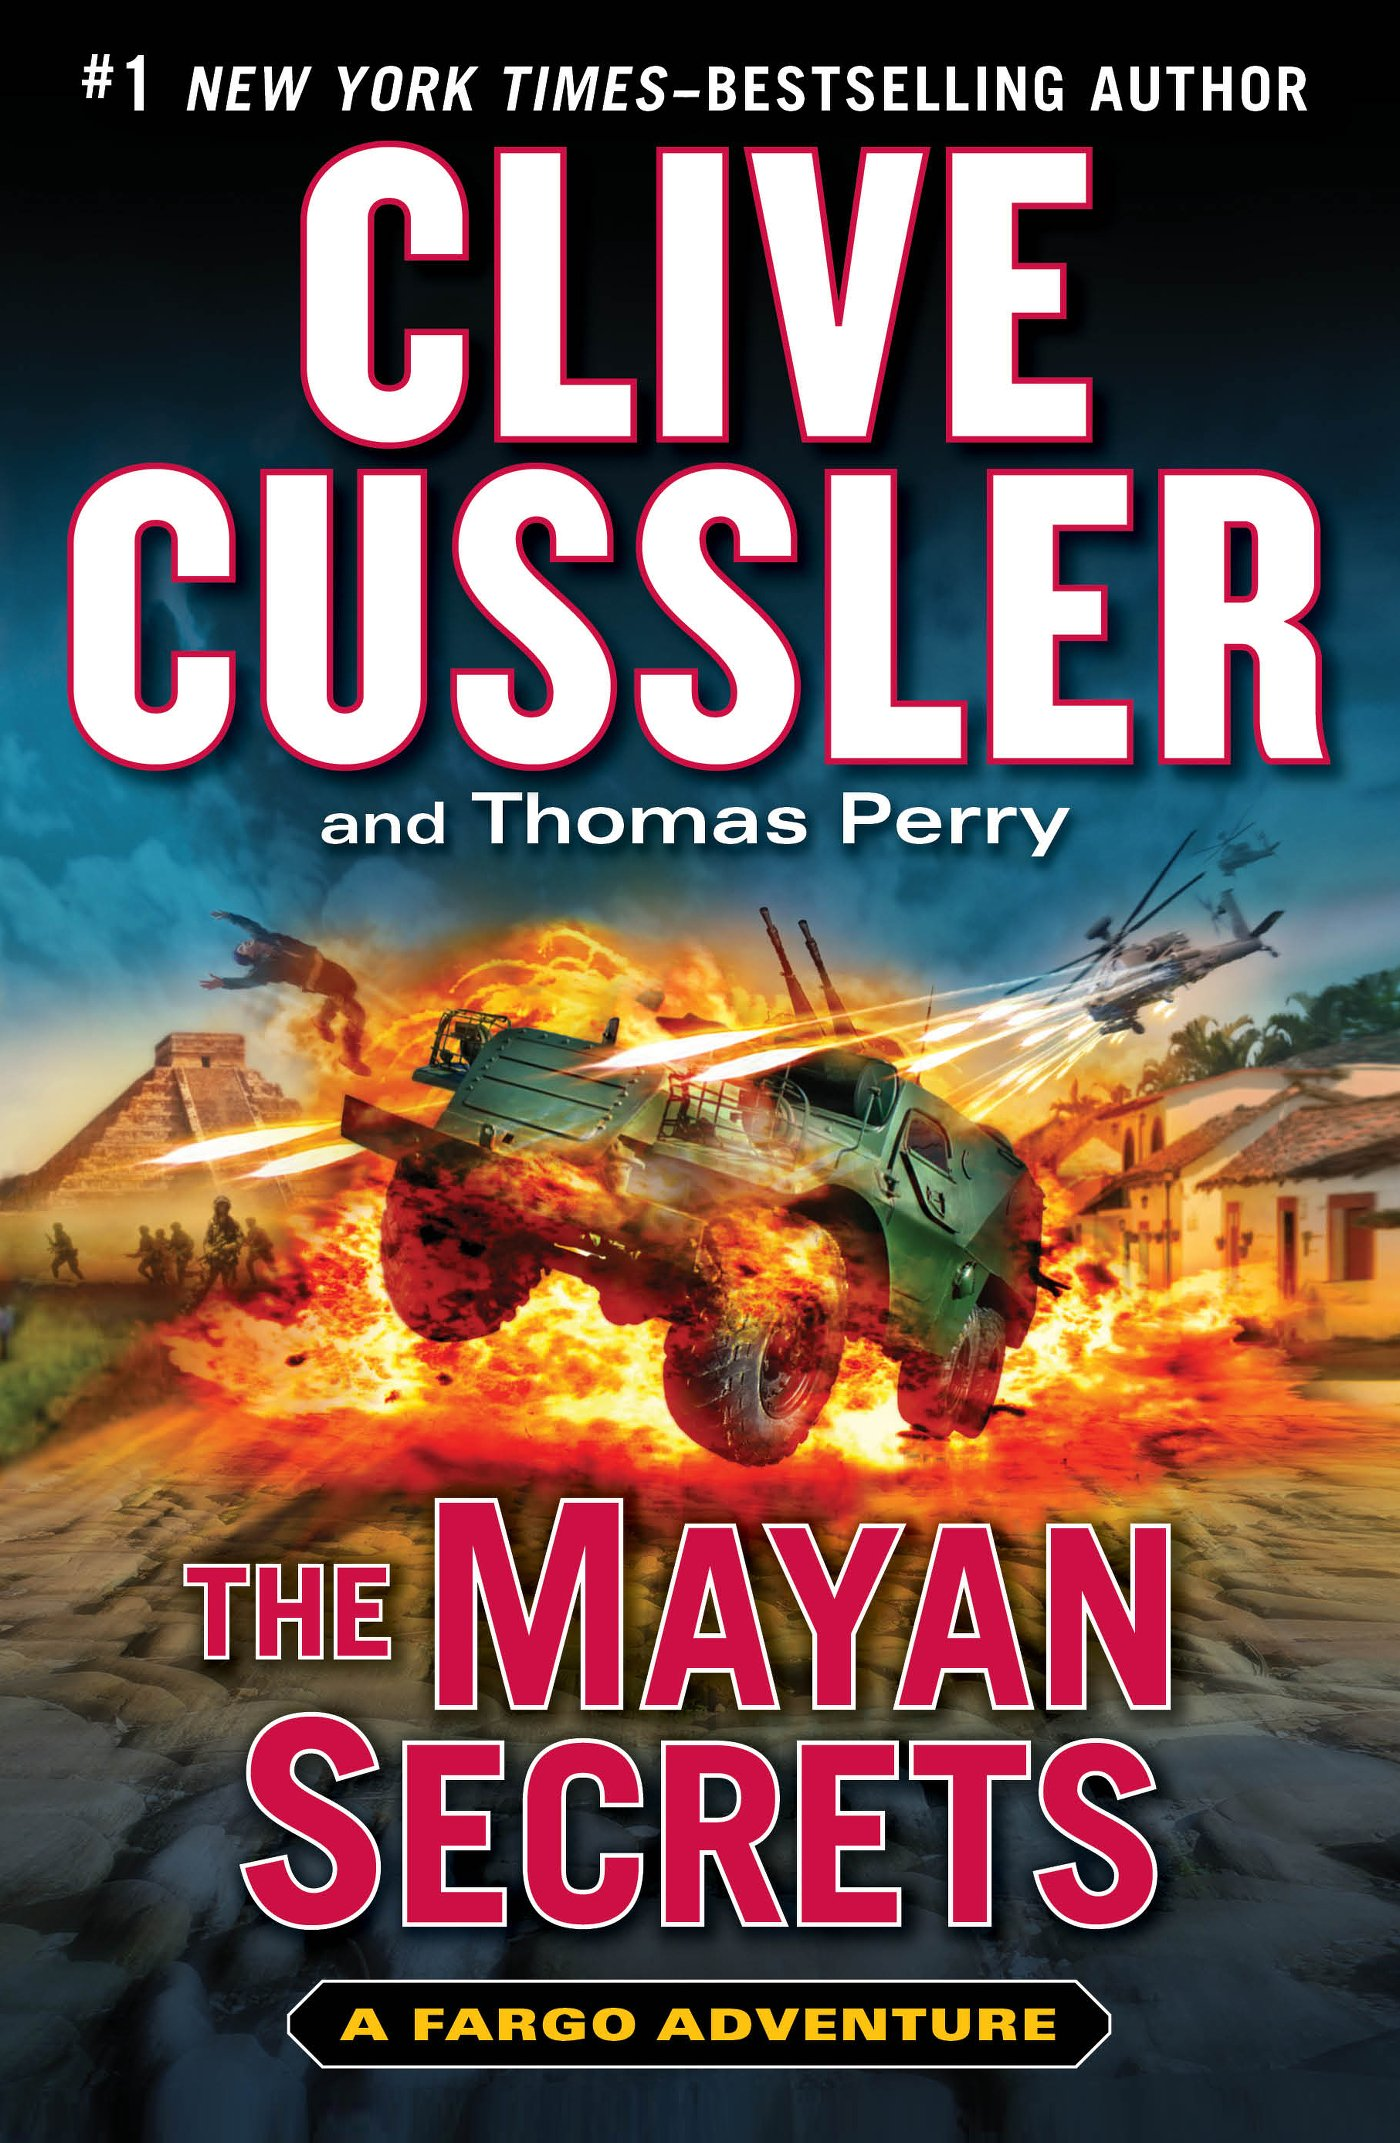 Image result for mayan secrets cussler